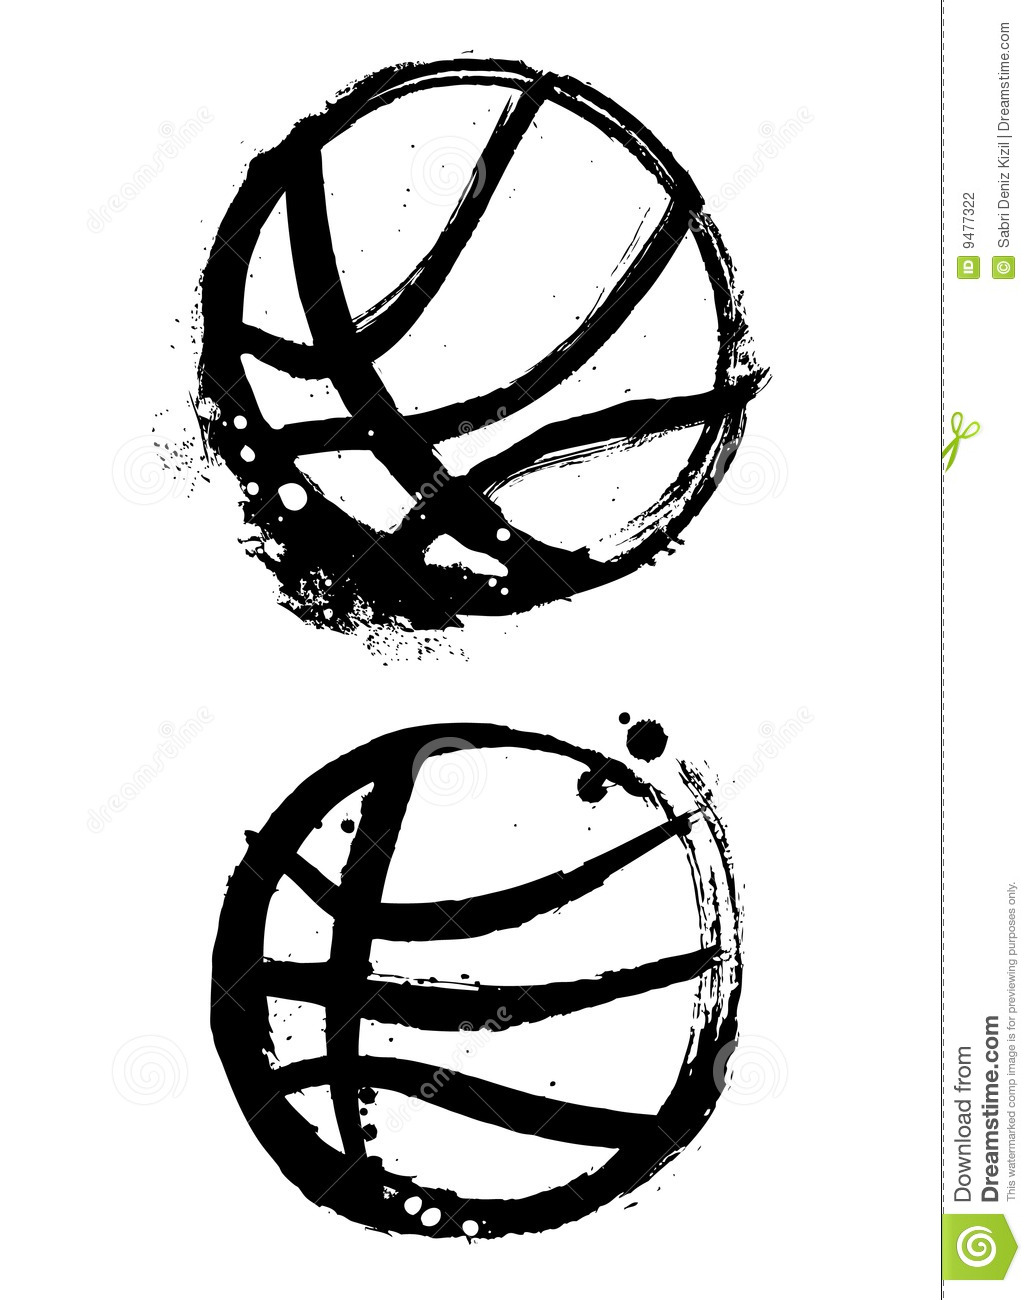 Grunge Basketball Vector Stock Vector Illustration Of Graphic 9477322